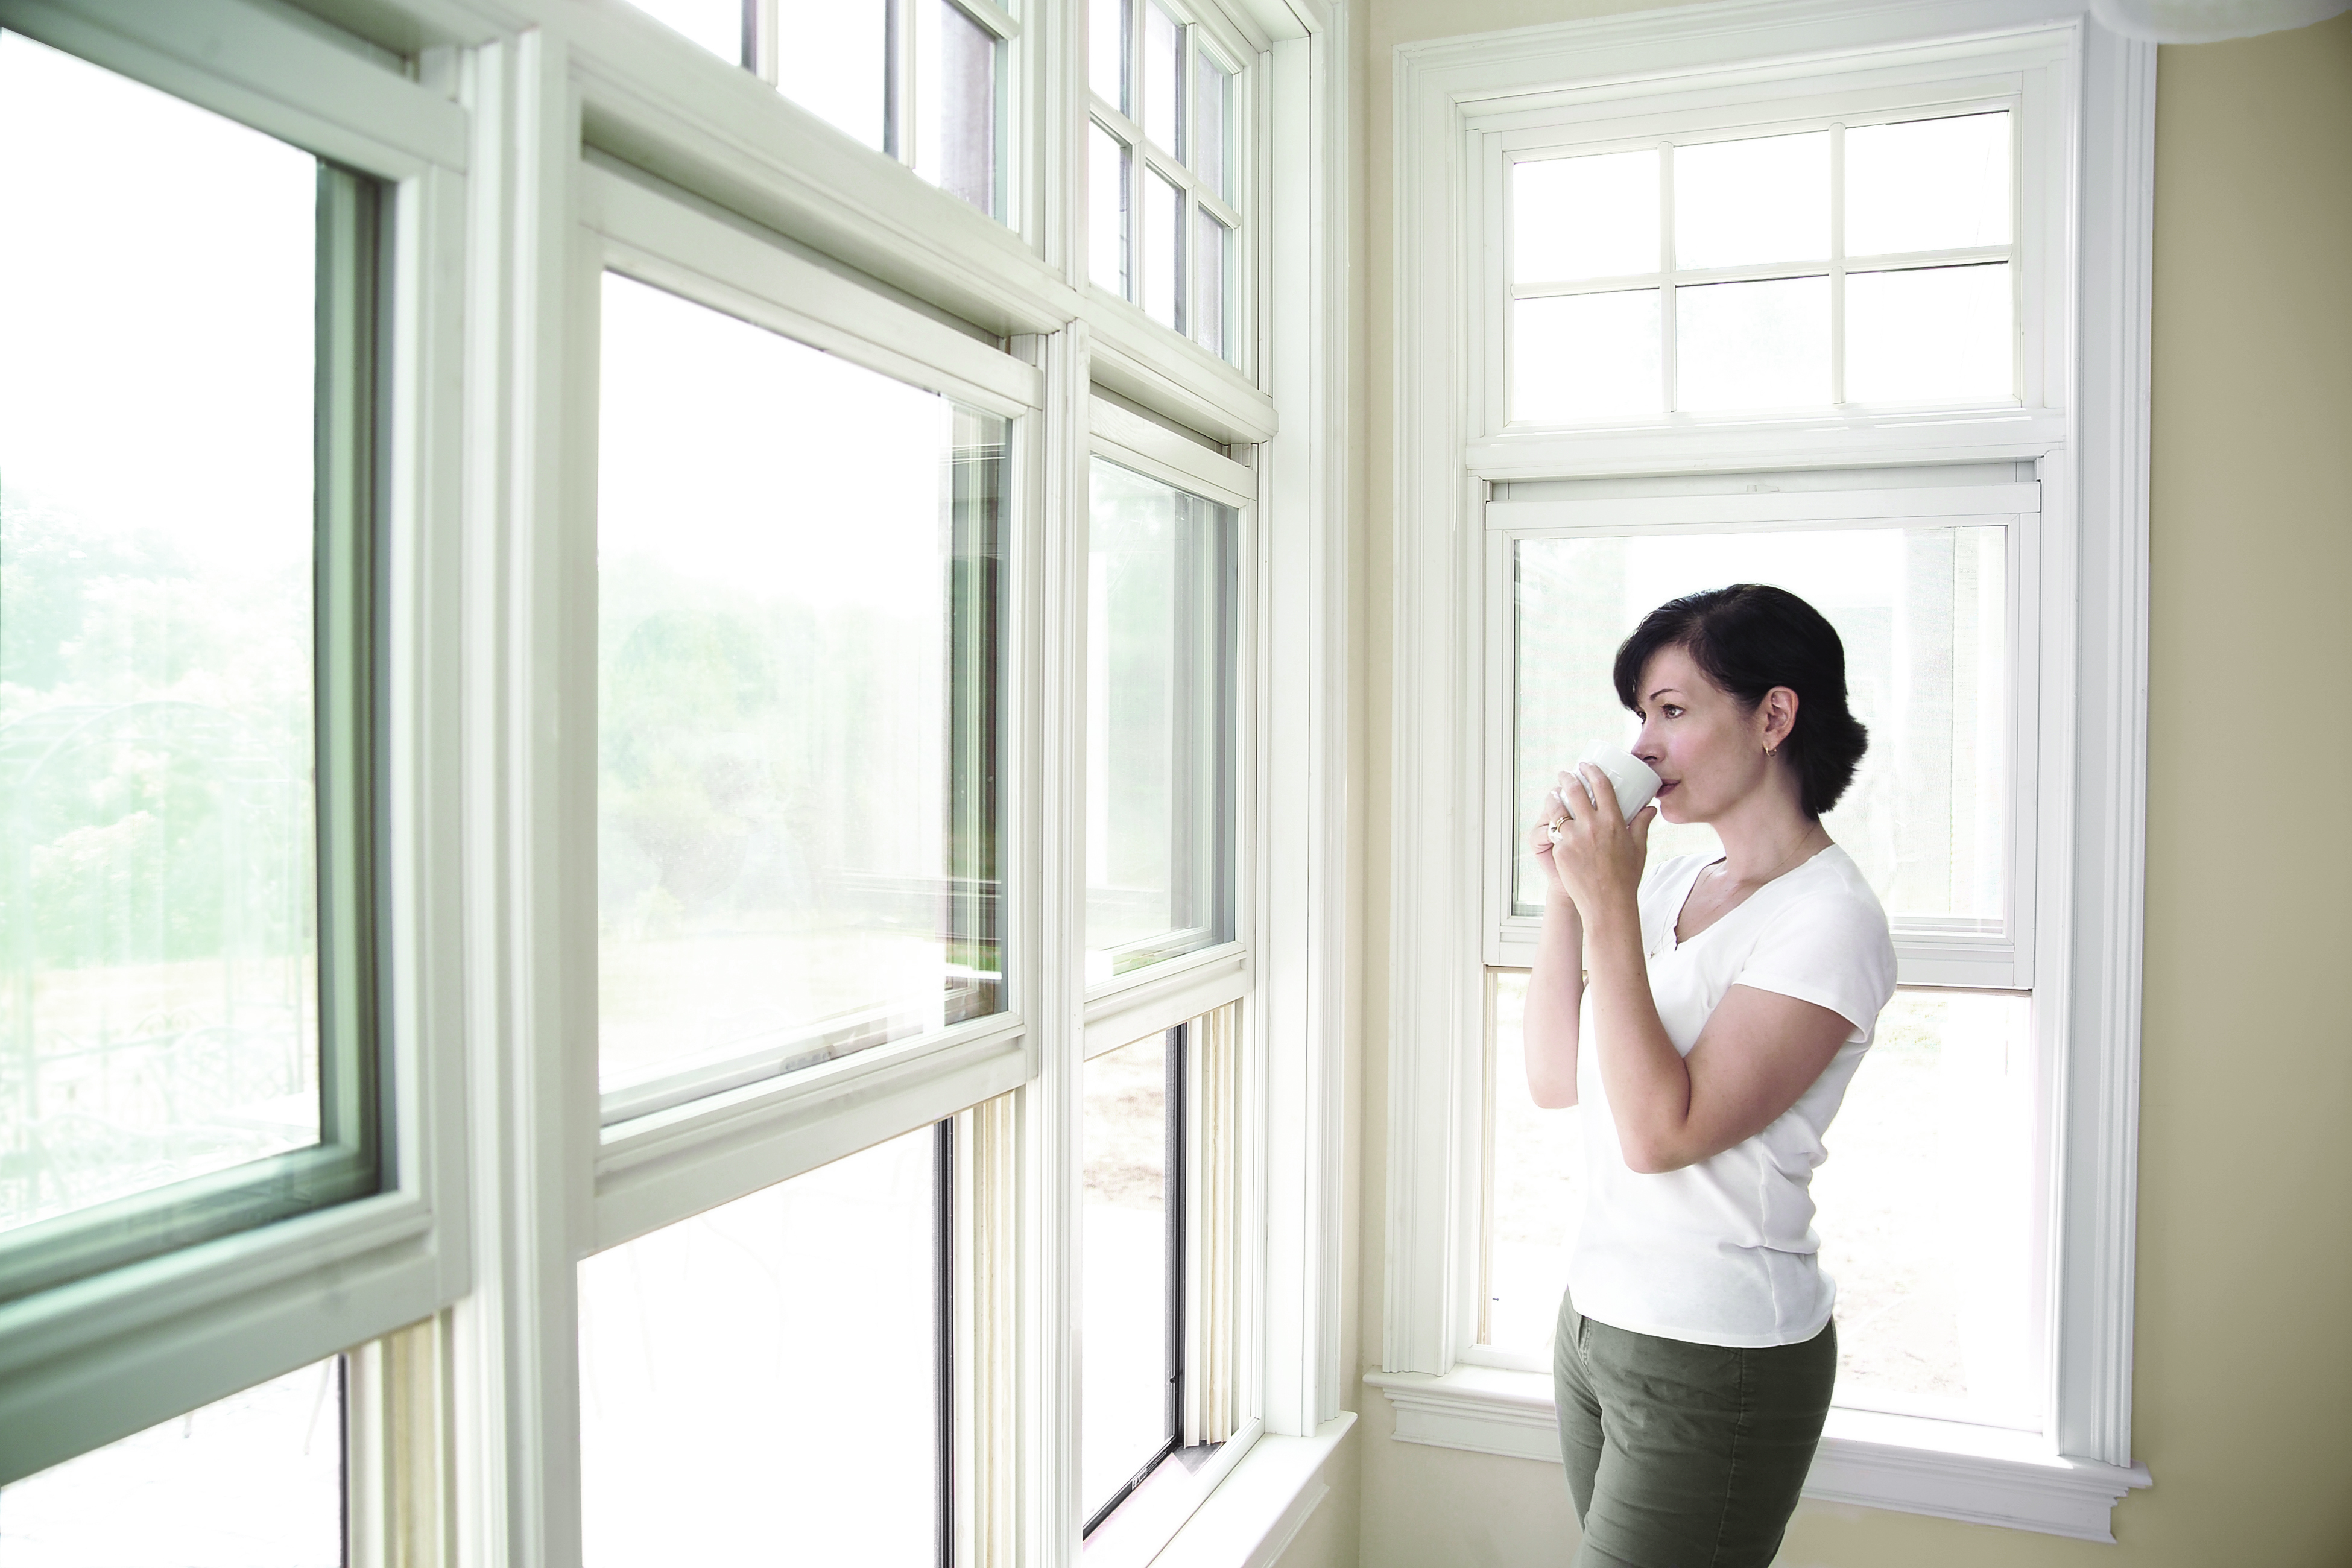 Replacement Windows & Doors For Your Home